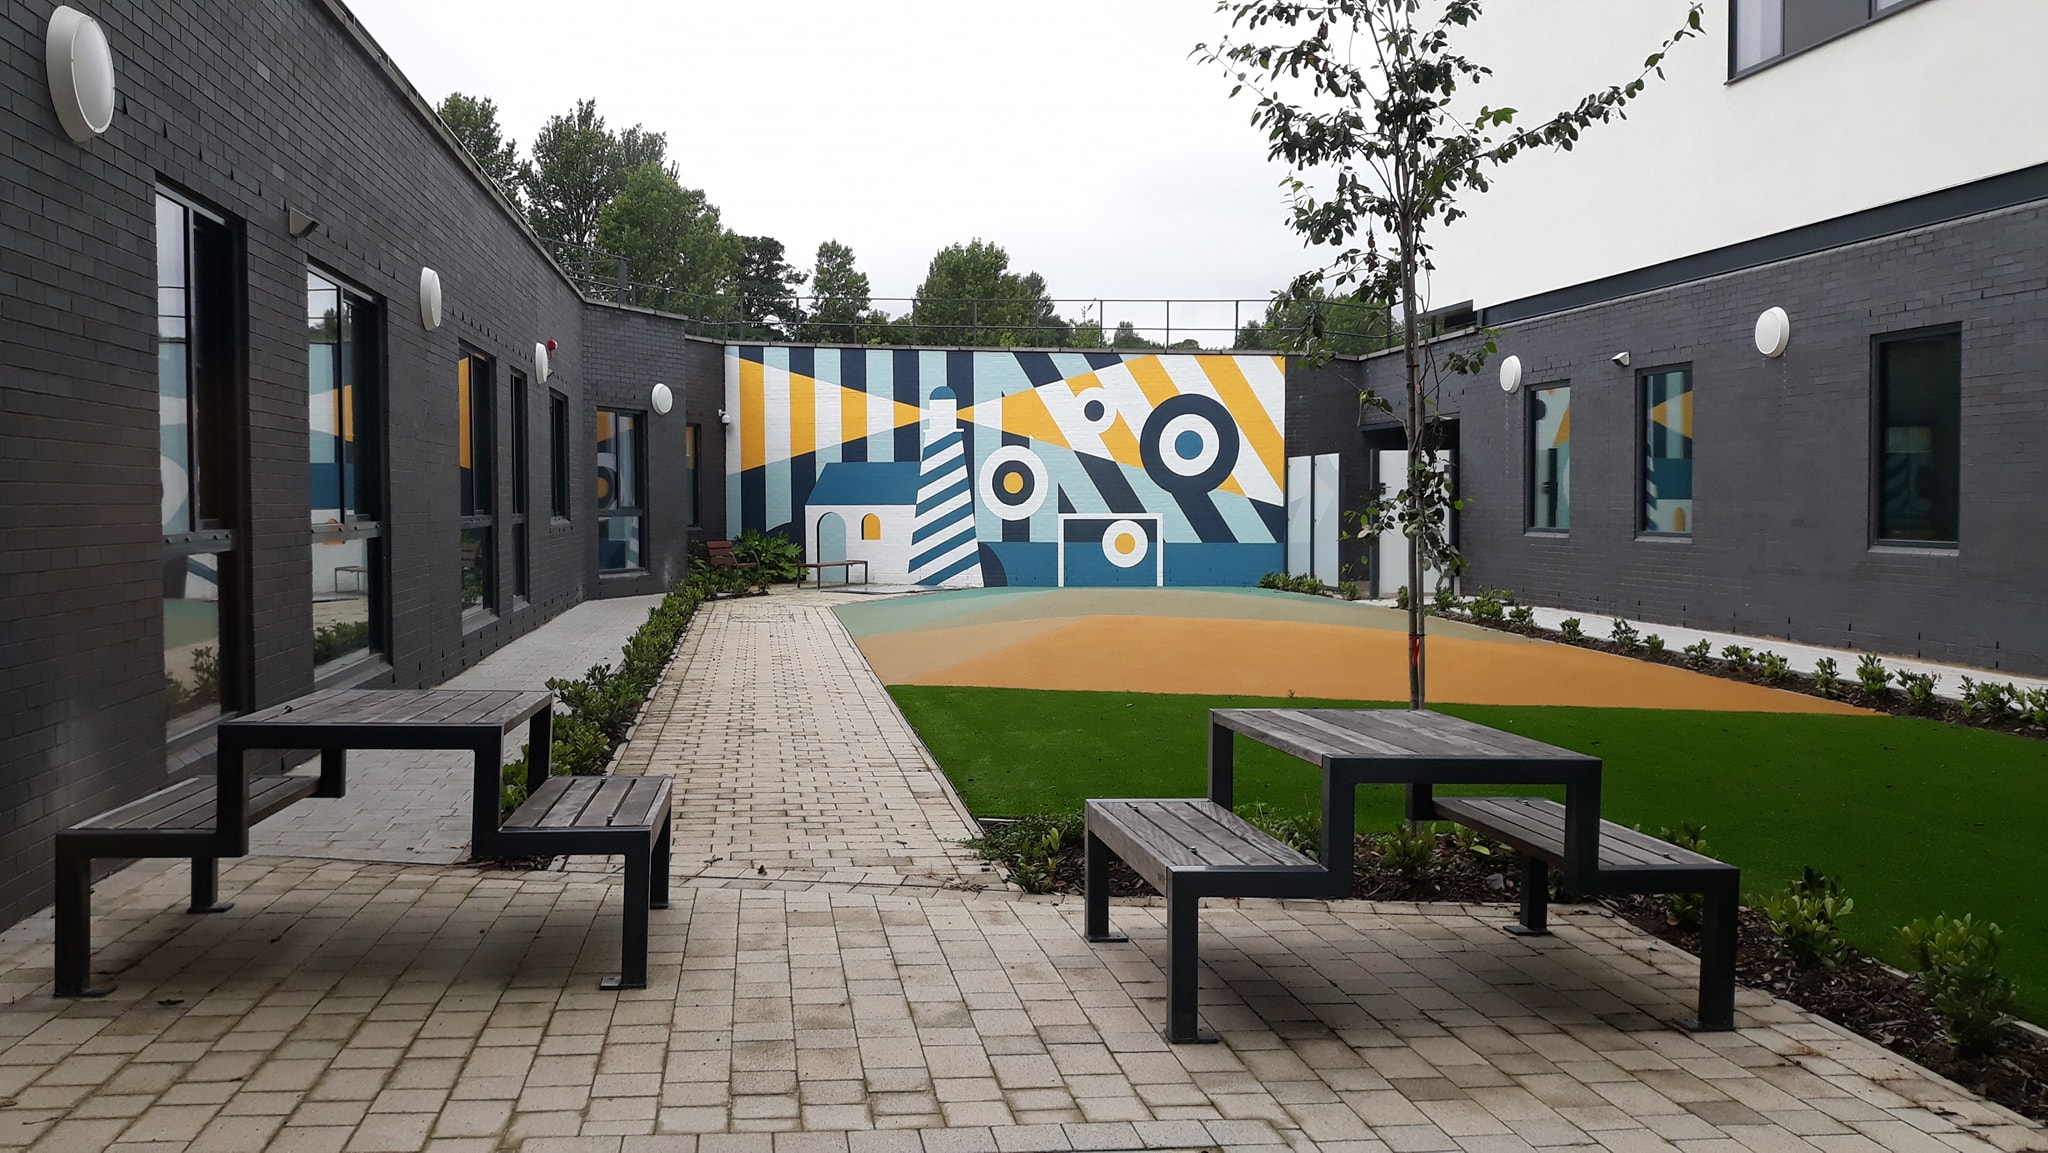 The garden for the mental health ward for young people.